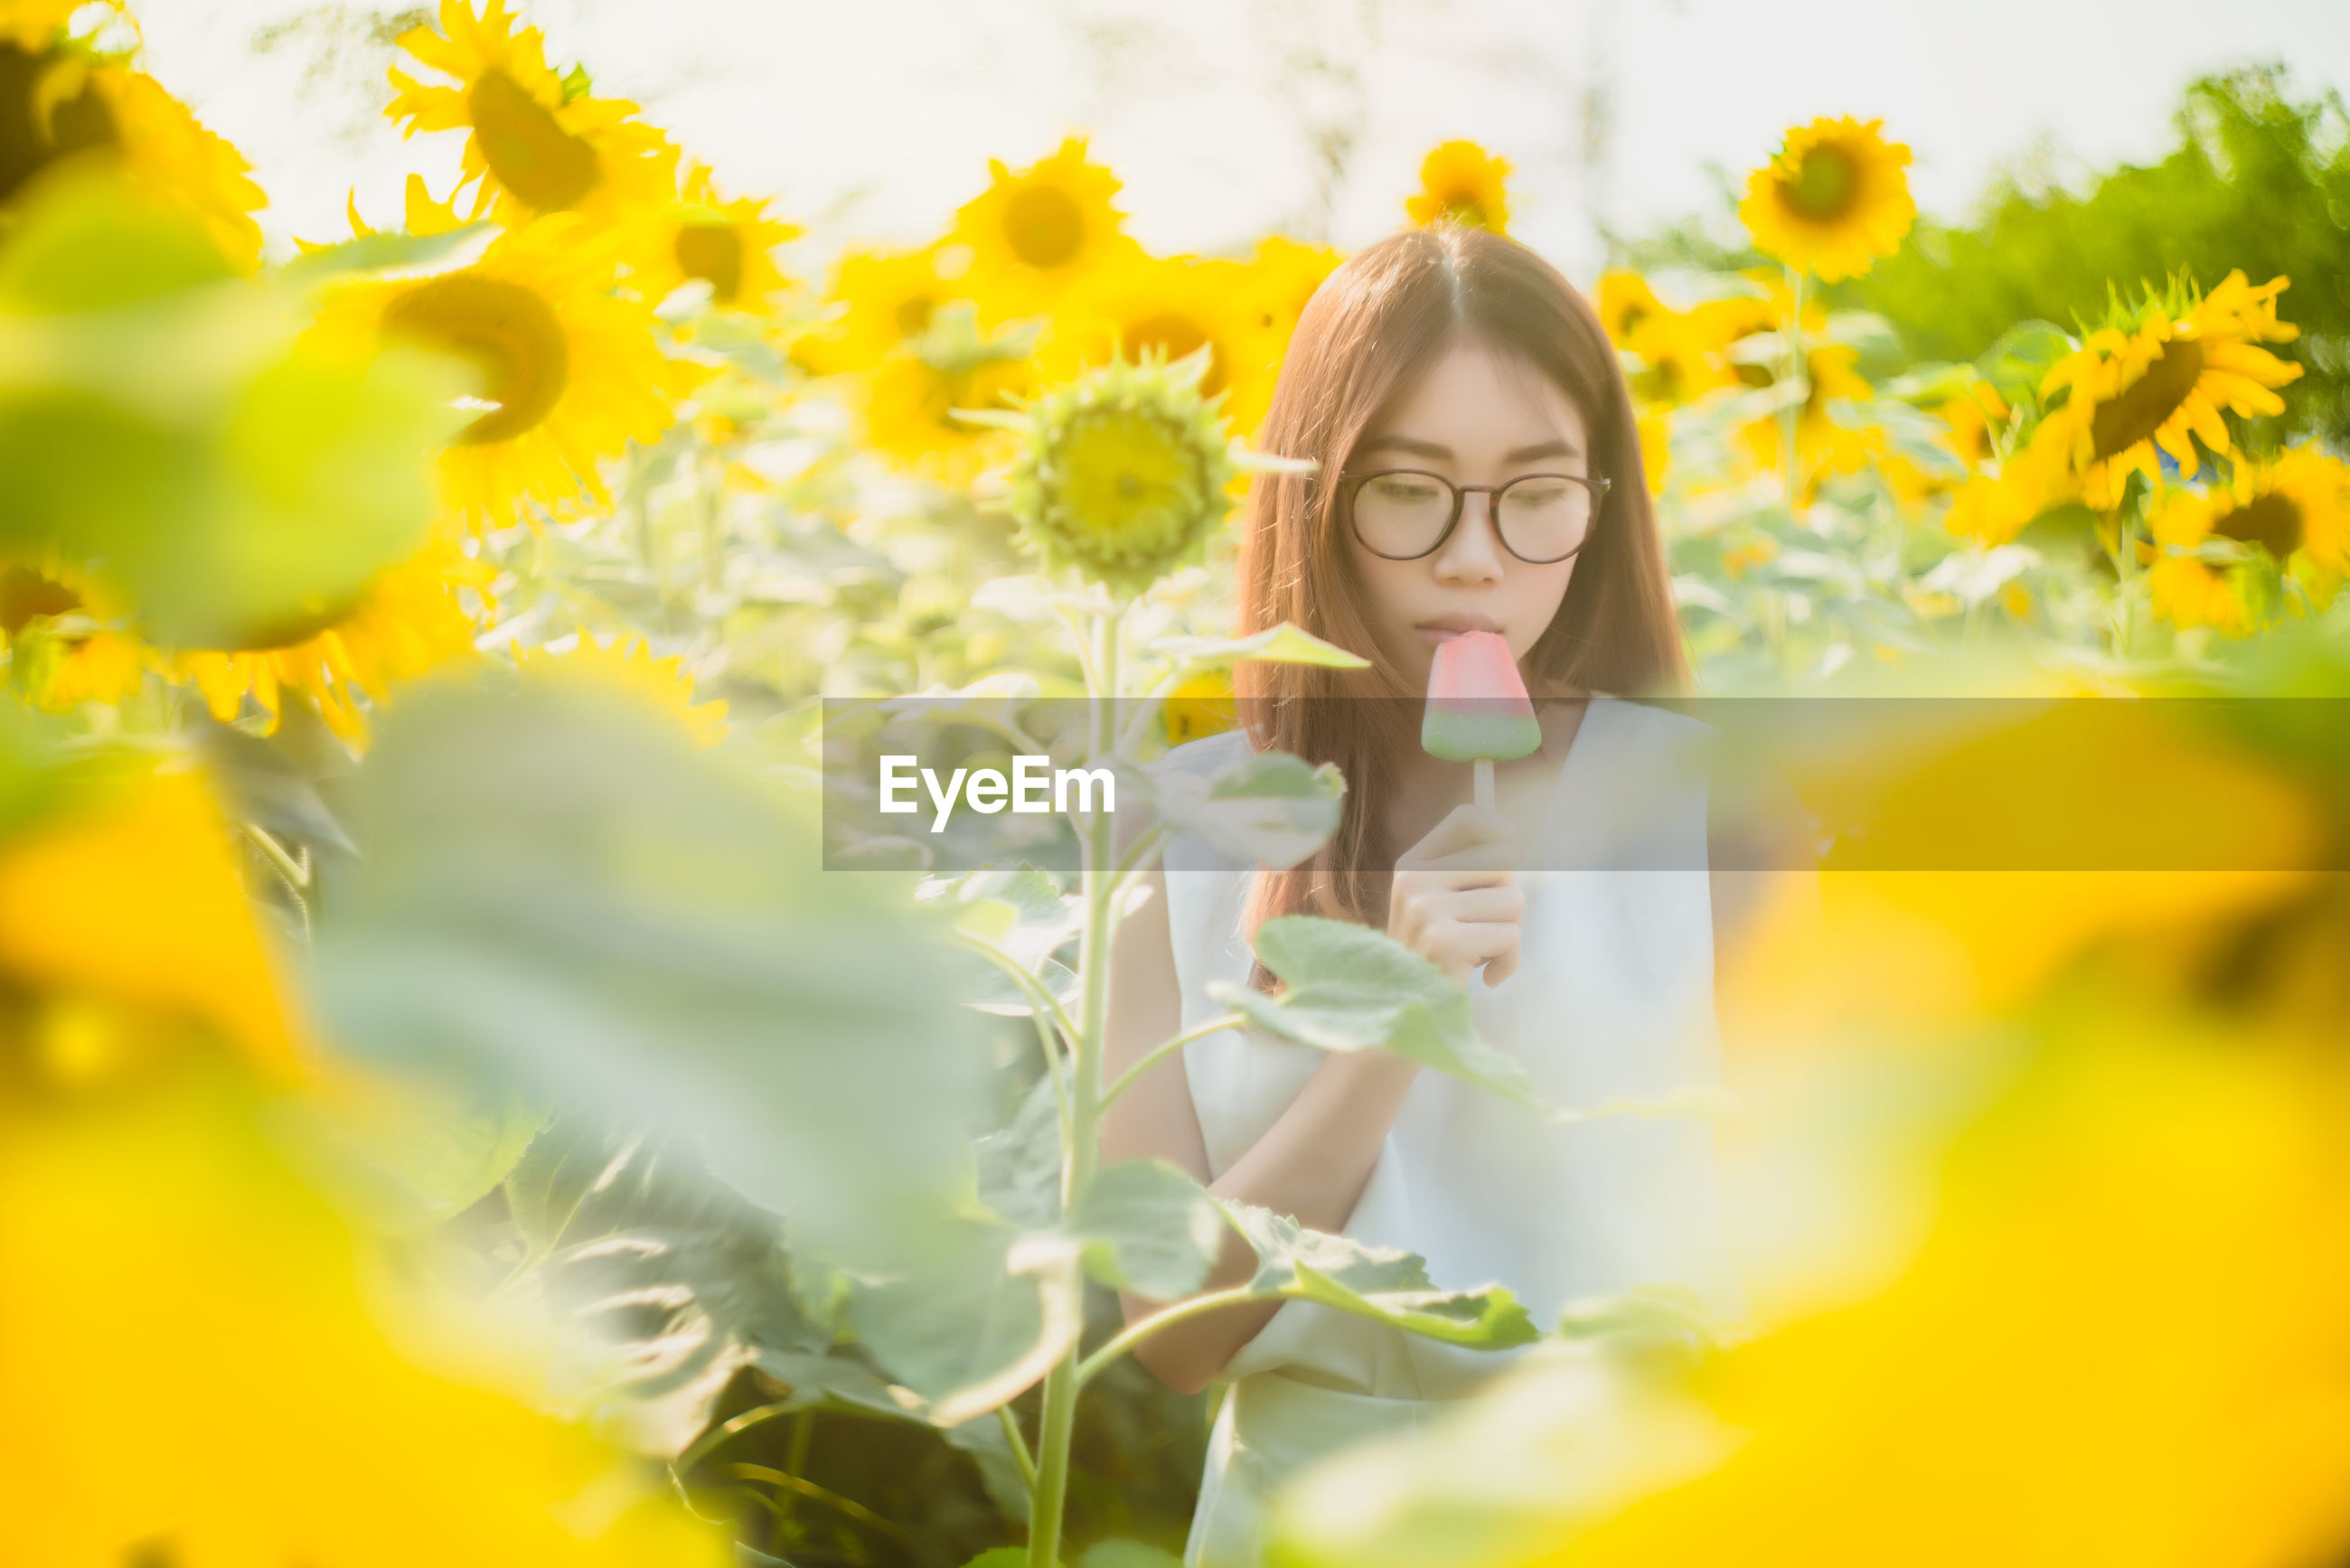 PORTRAIT OF WOMAN WITH YELLOW FLOWERS IN BLOOM